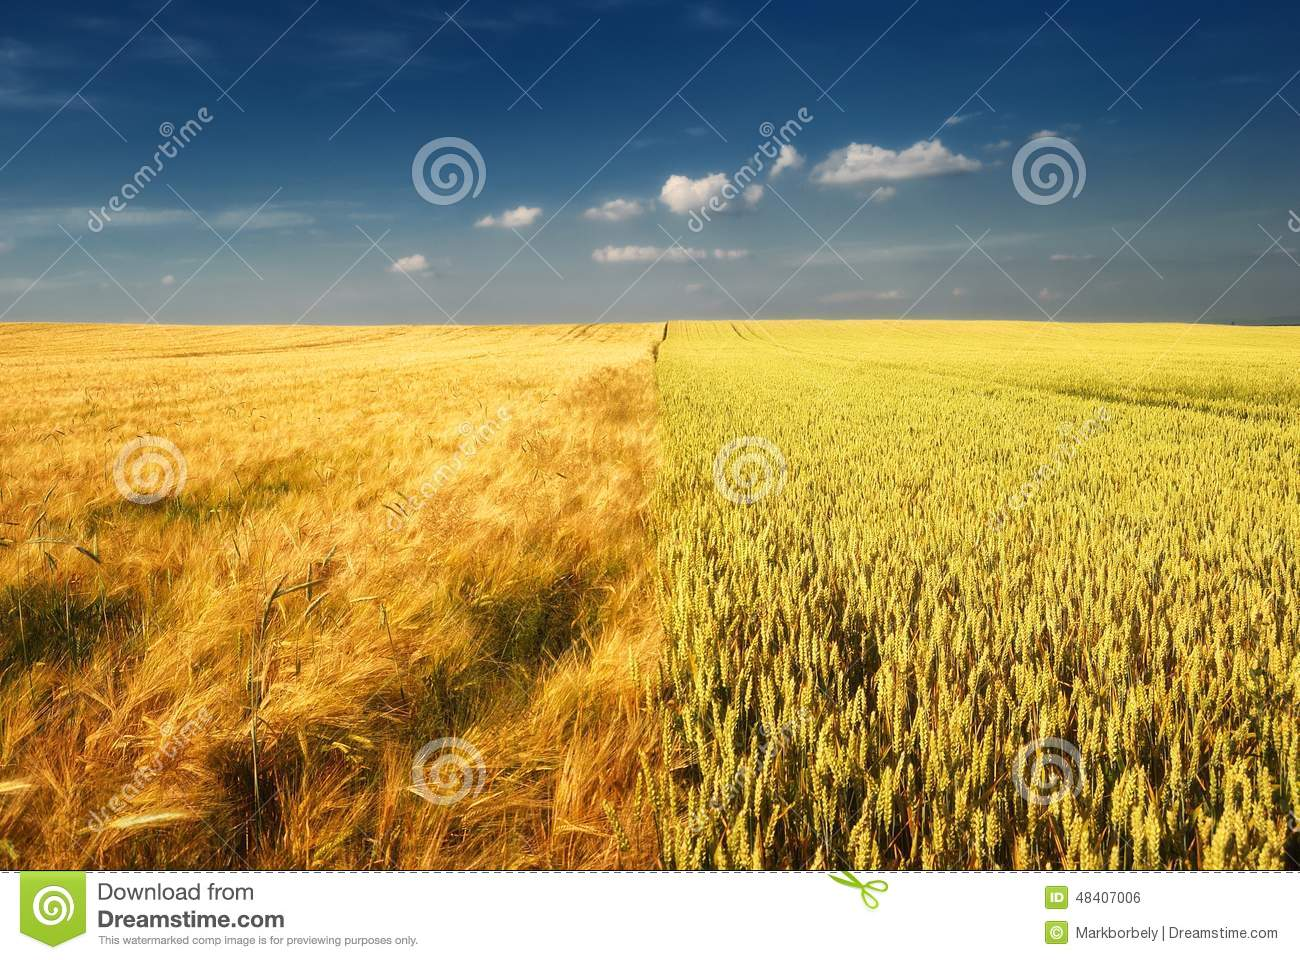 Golden wheat field and cloudy sky